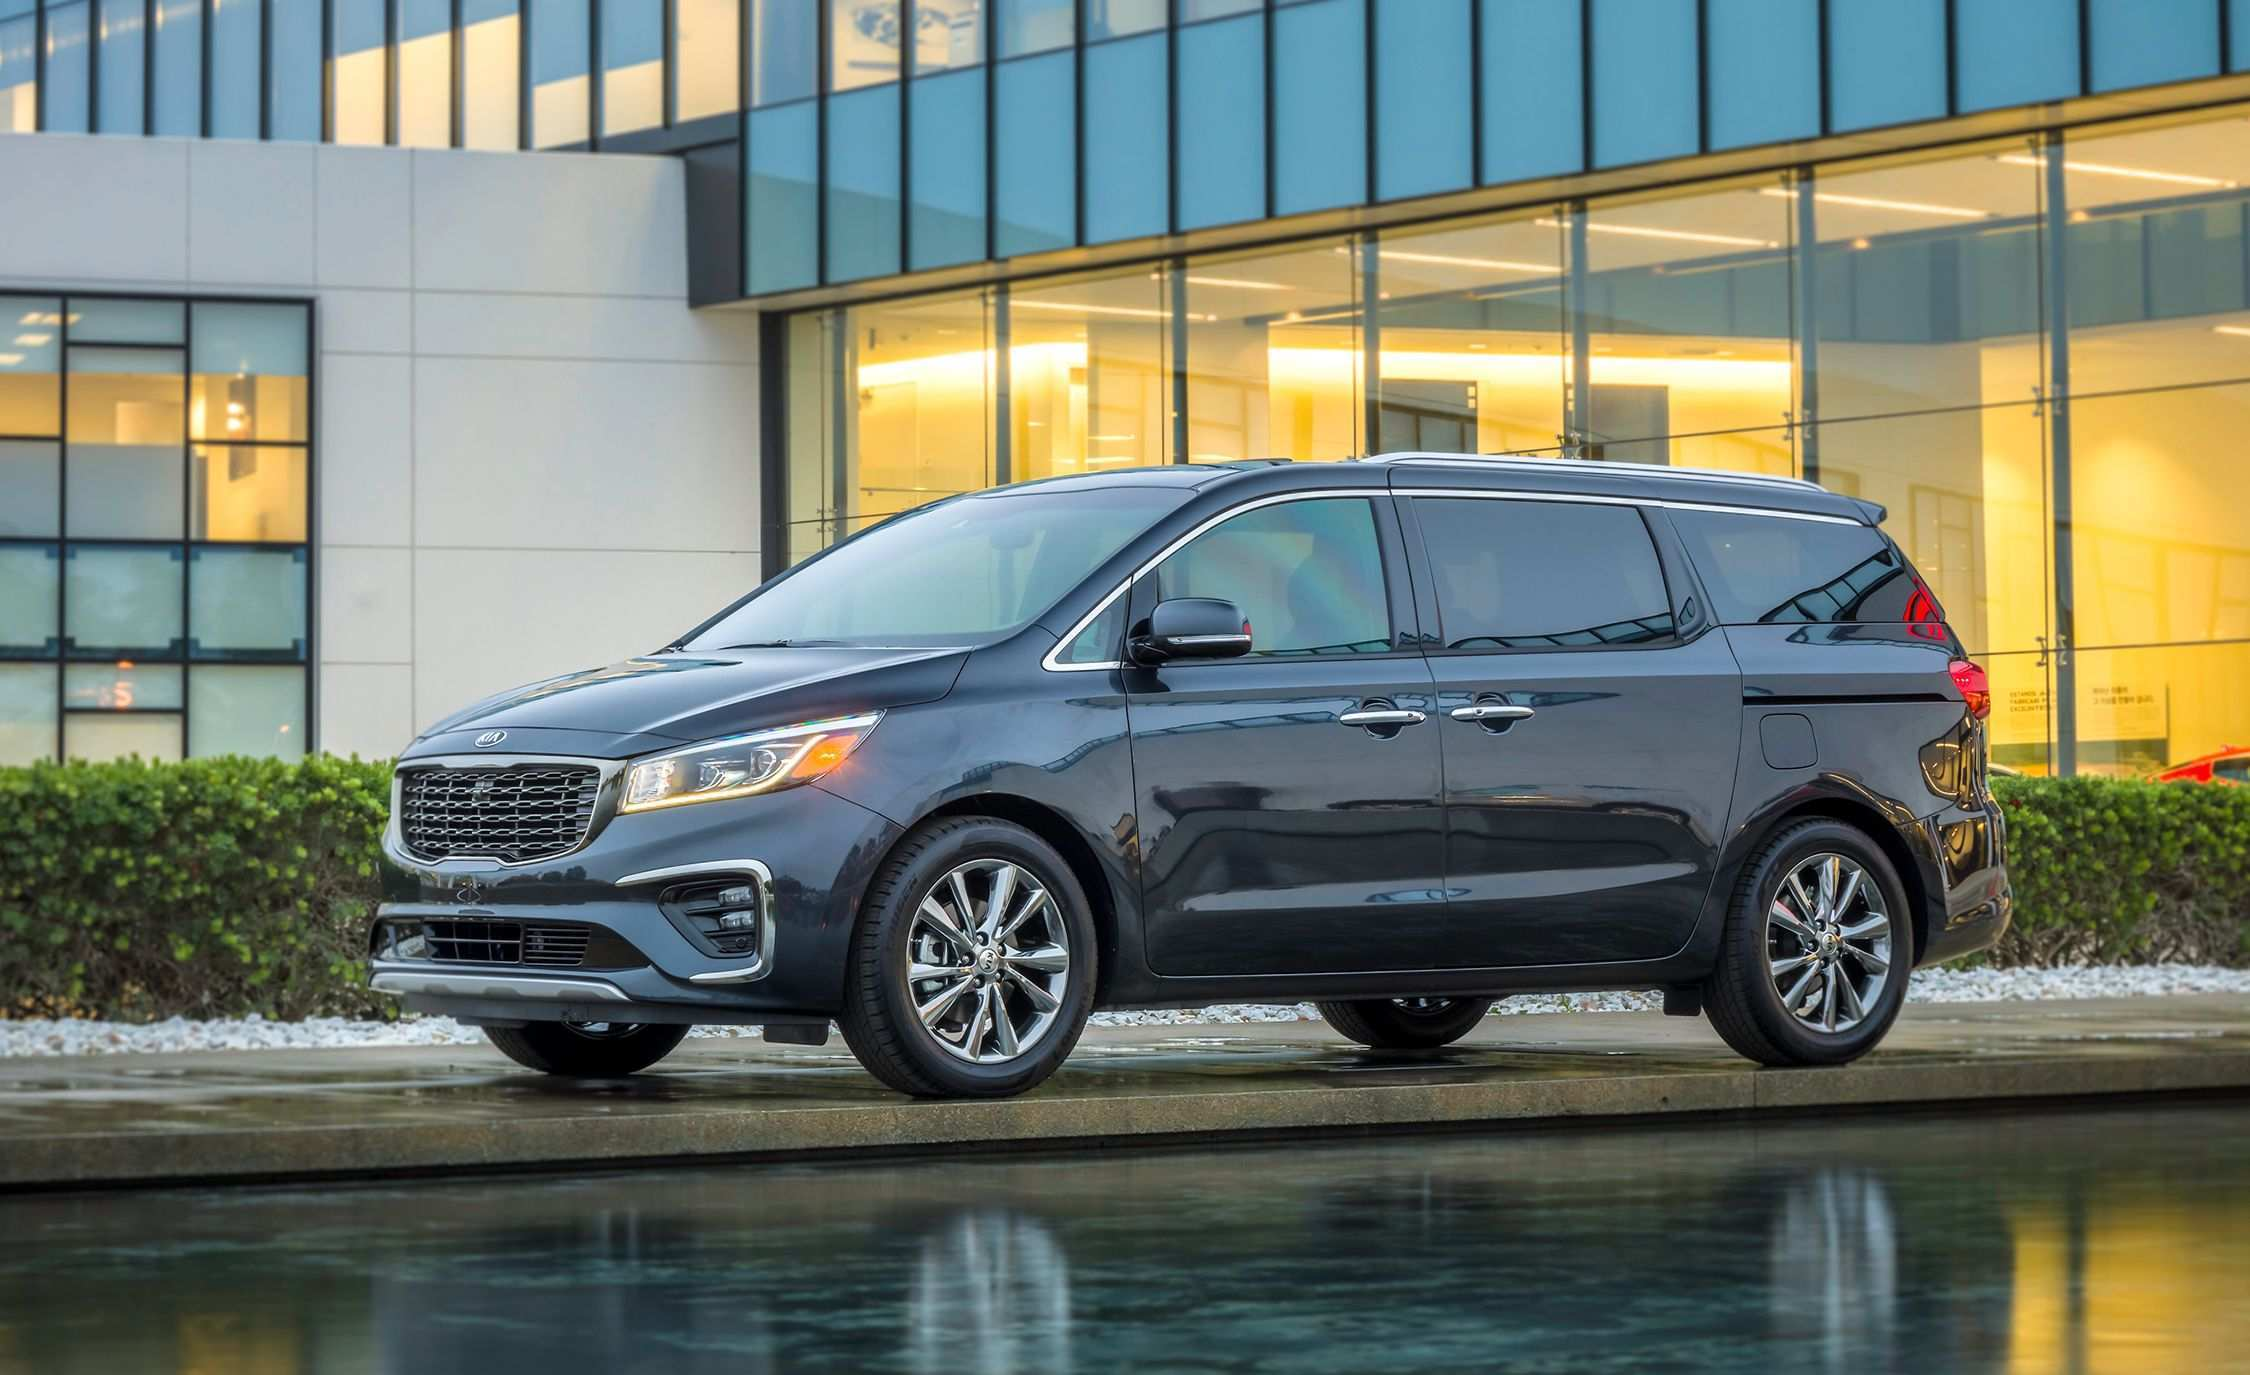 29 All New Kia Grand Carnival 2019 Review Research New